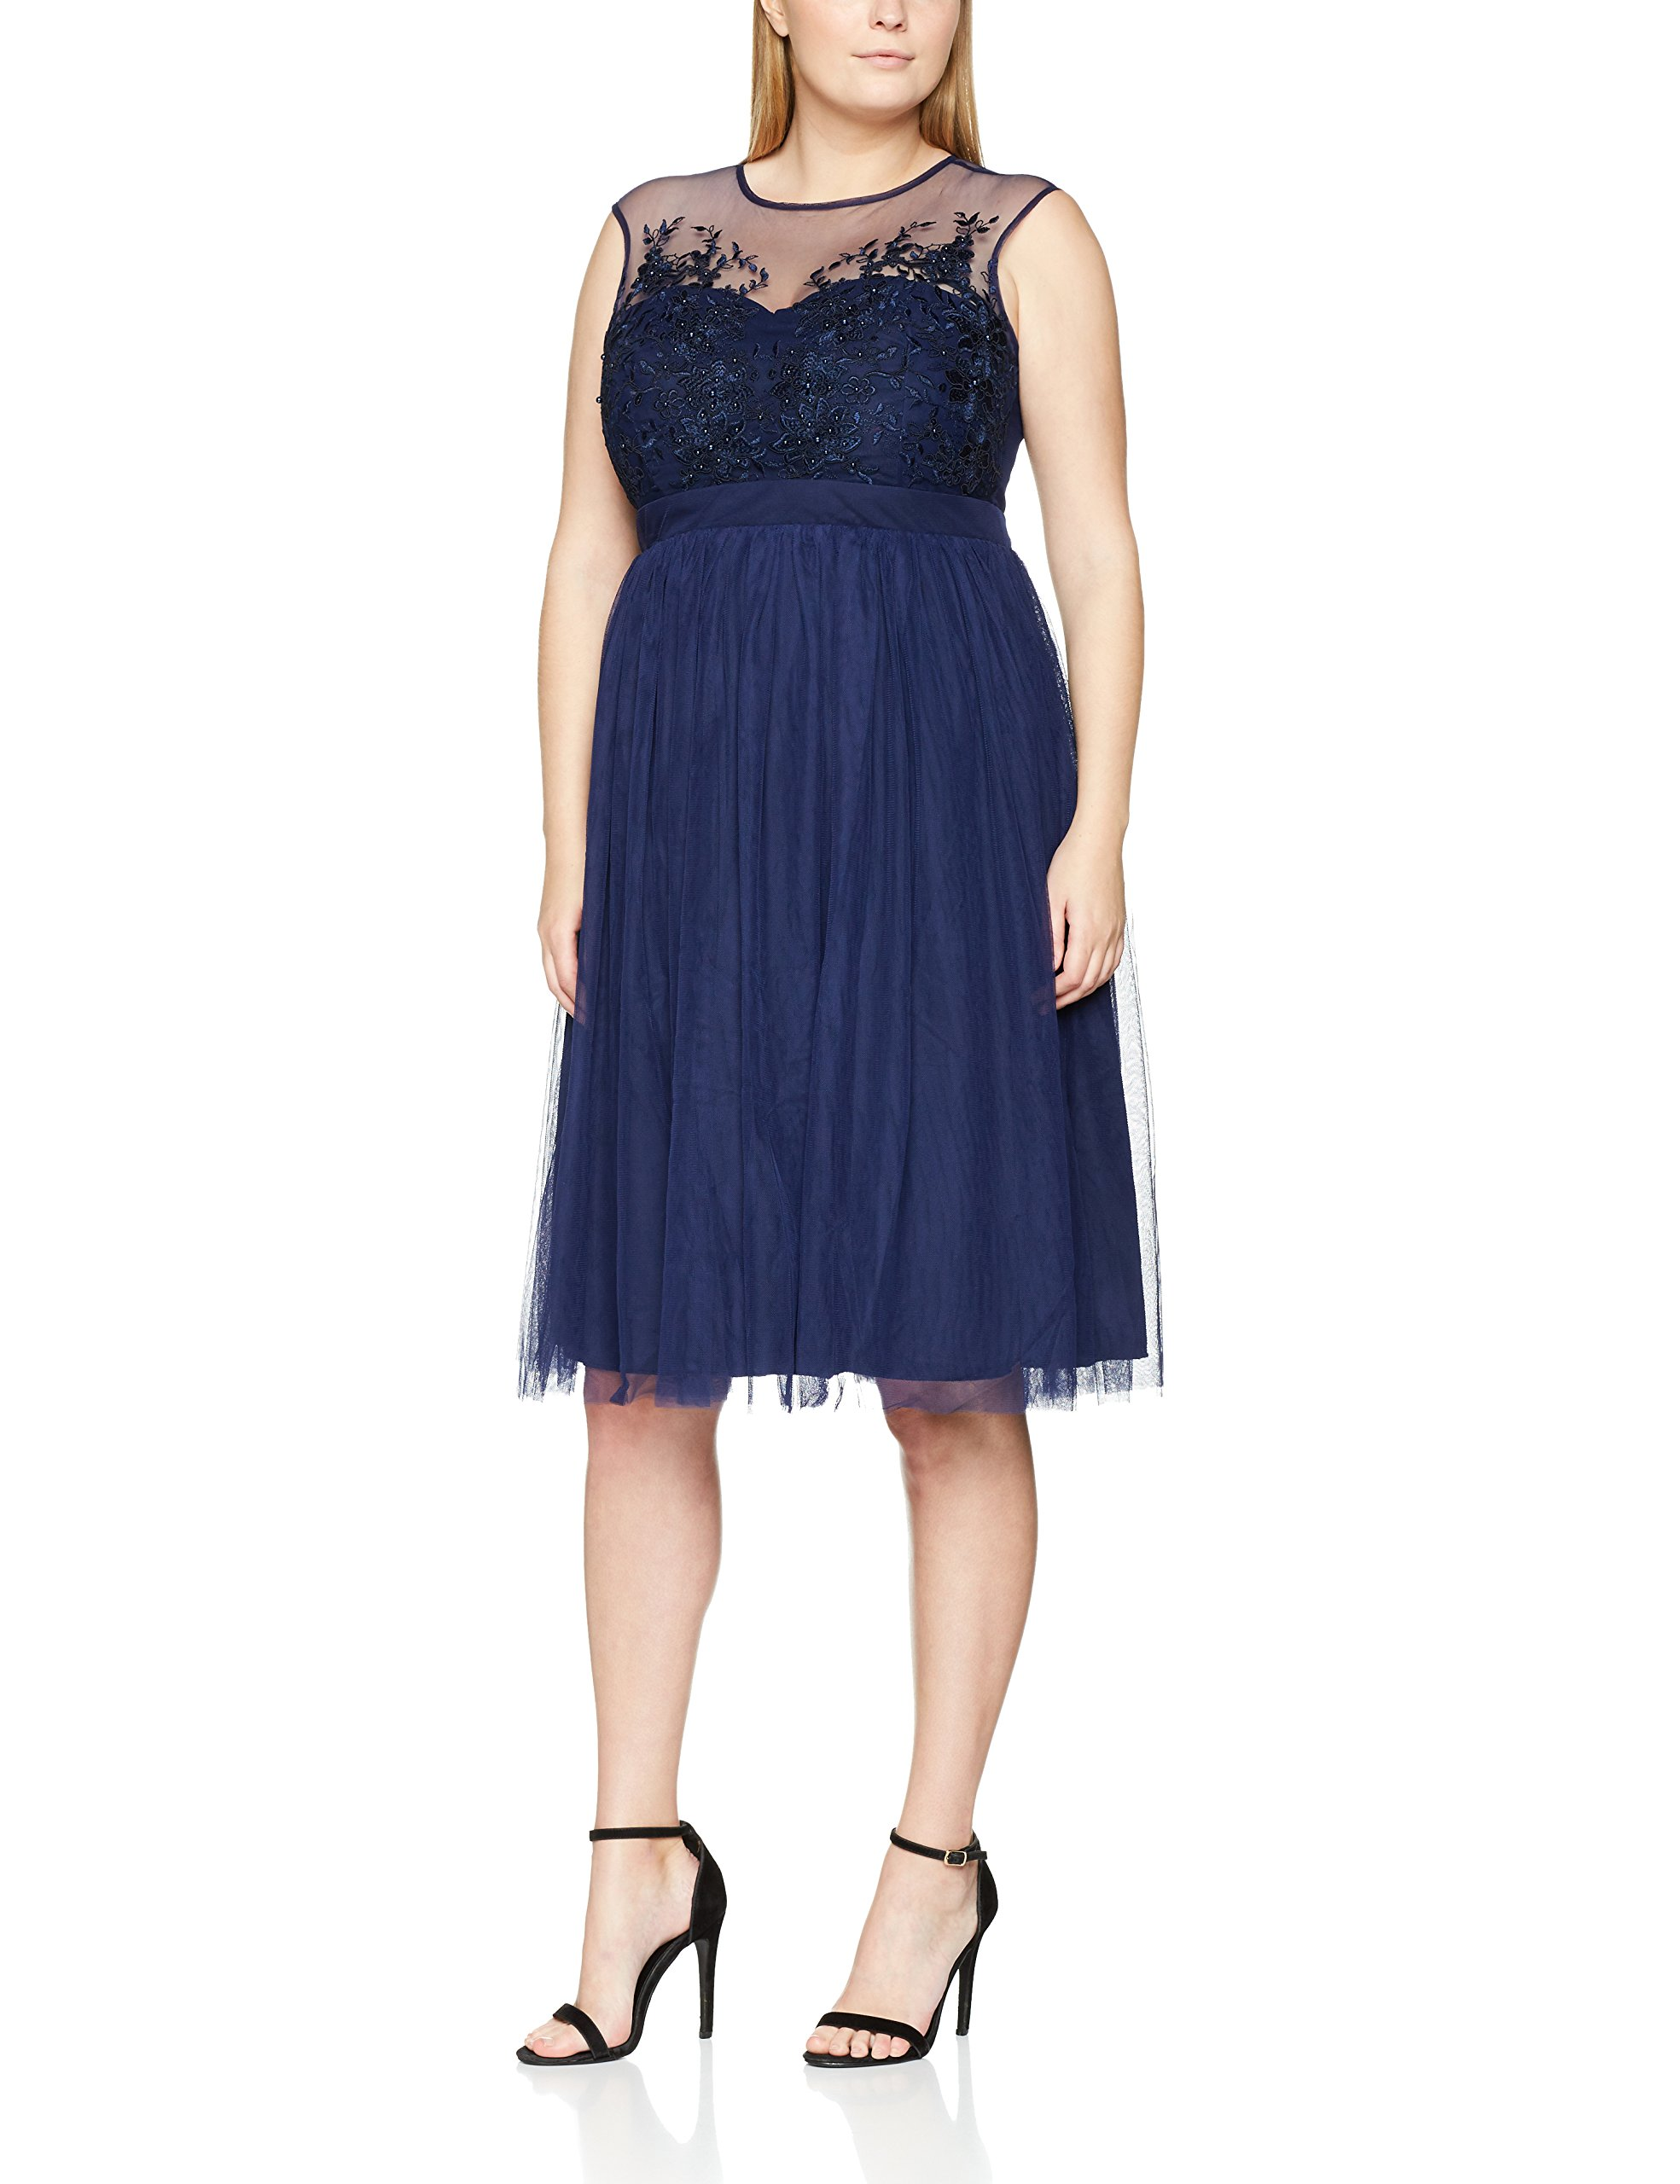 Du L7975c2aRobe Ras Cou FemmeBleublue Mistress Col Little Fabricant16 Cocktail Manches 00144taille Courtes Ib7Yvf6gy